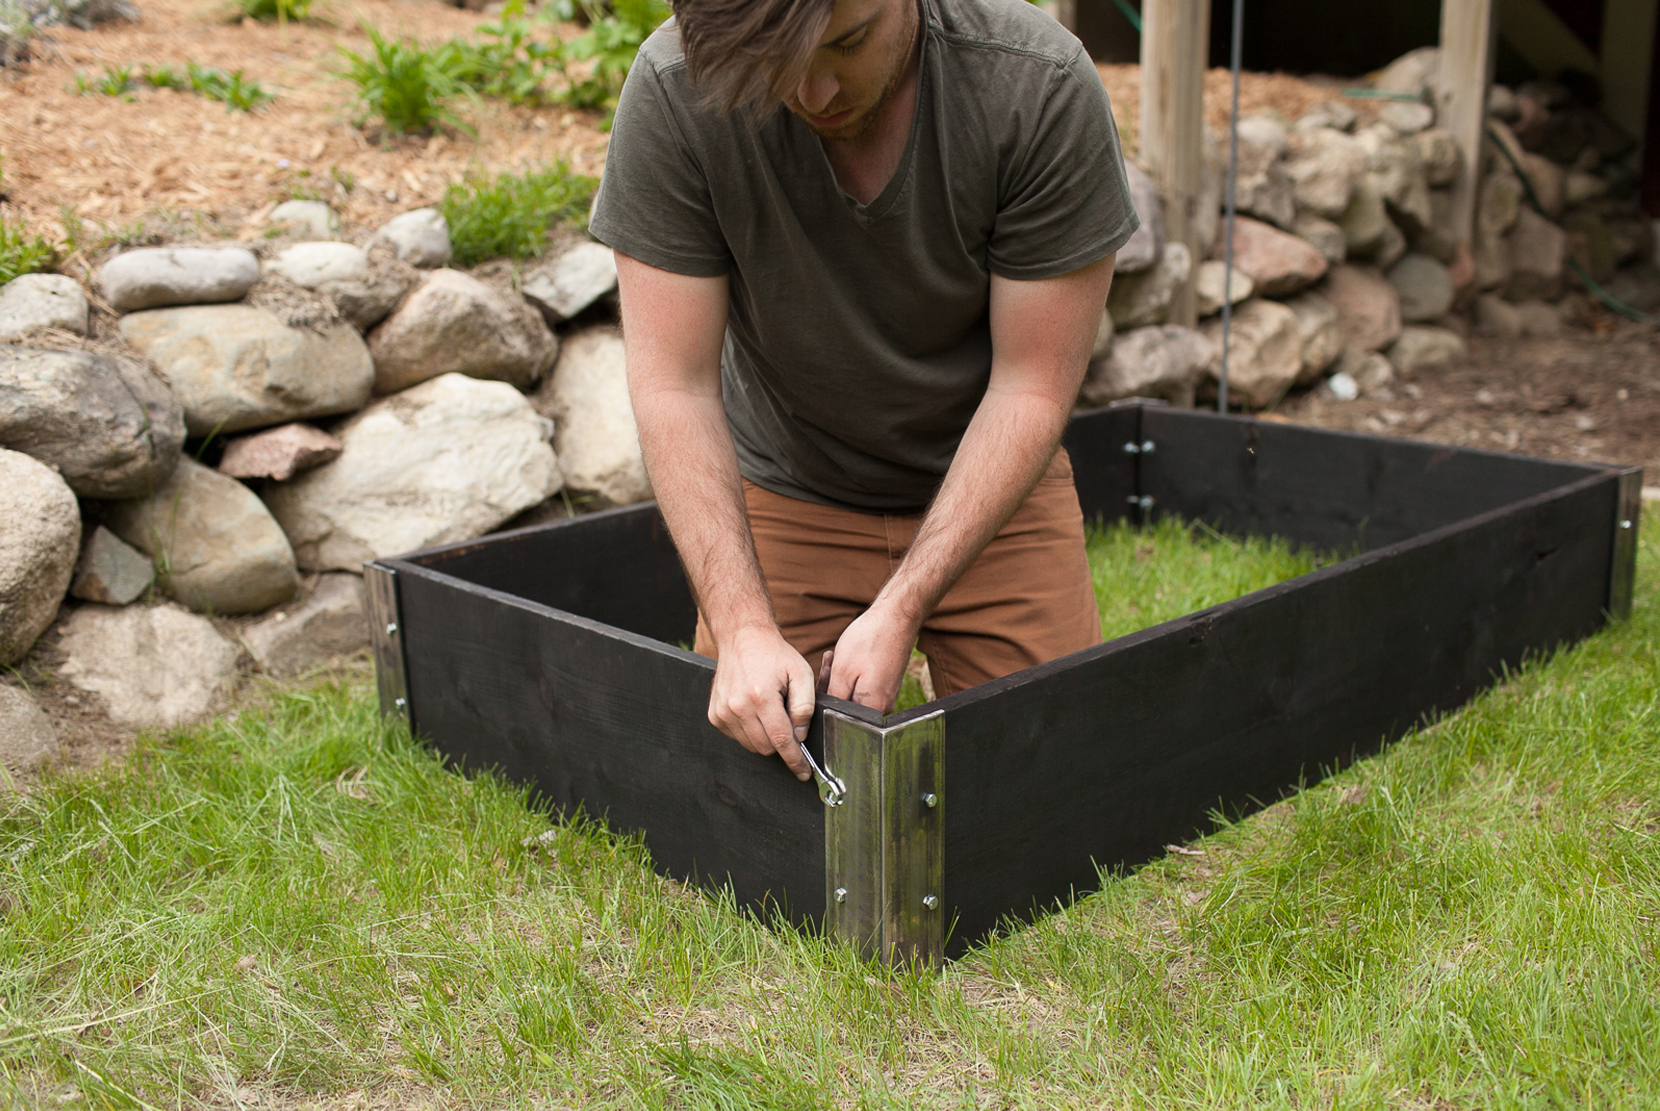 Raised Bed Garden | Garden DIY | The Fresh Exchange